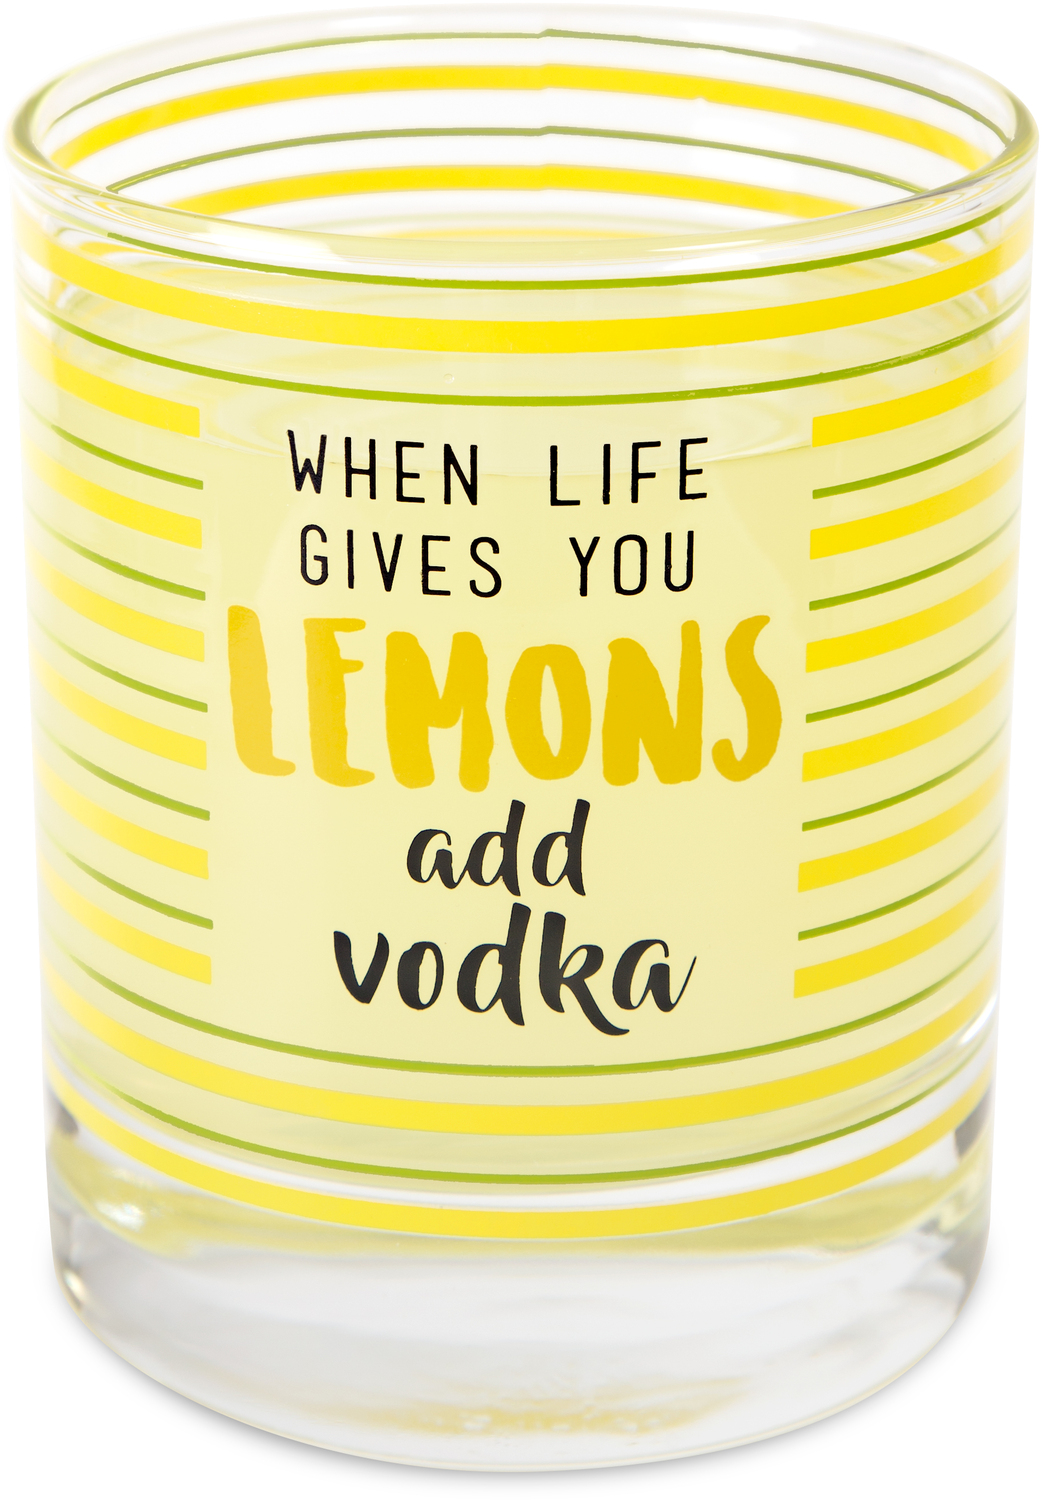 Vodka by Livin' on the Wedge - Vodka - 10 oz. Glass / Tea Light Holder